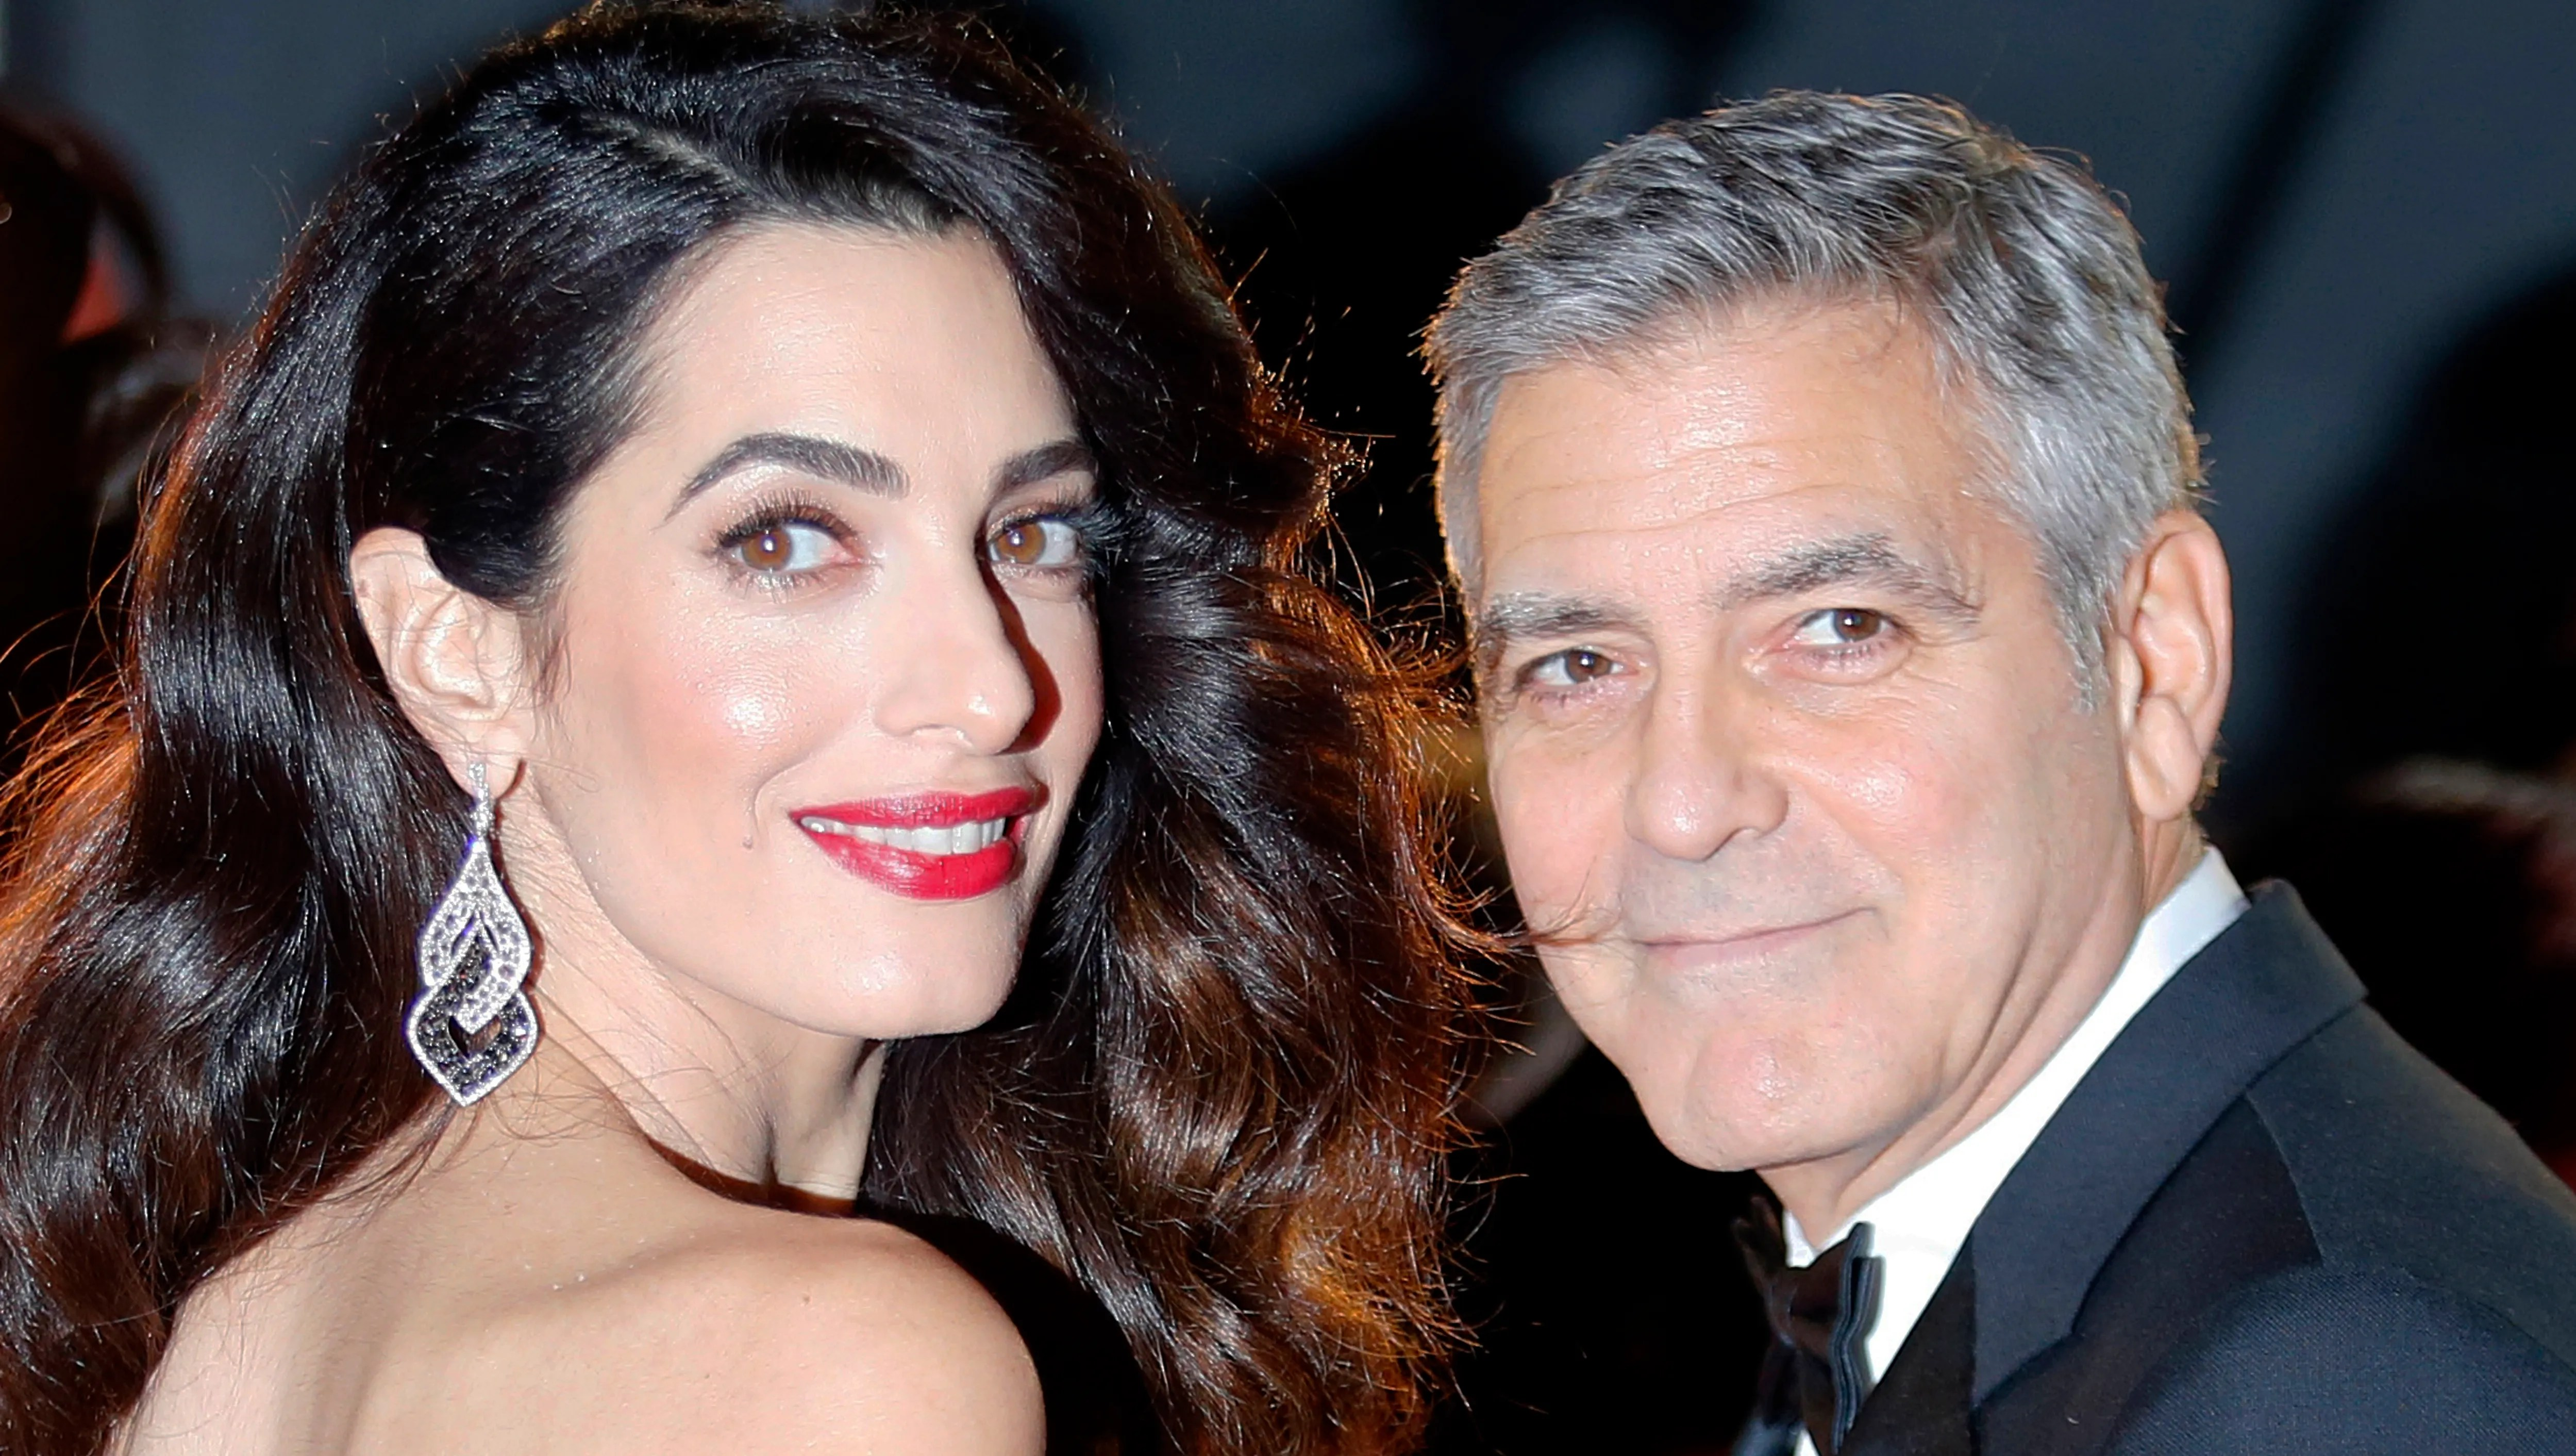 George  Amal Clooney donate  1 million SPLC to combat hate groups